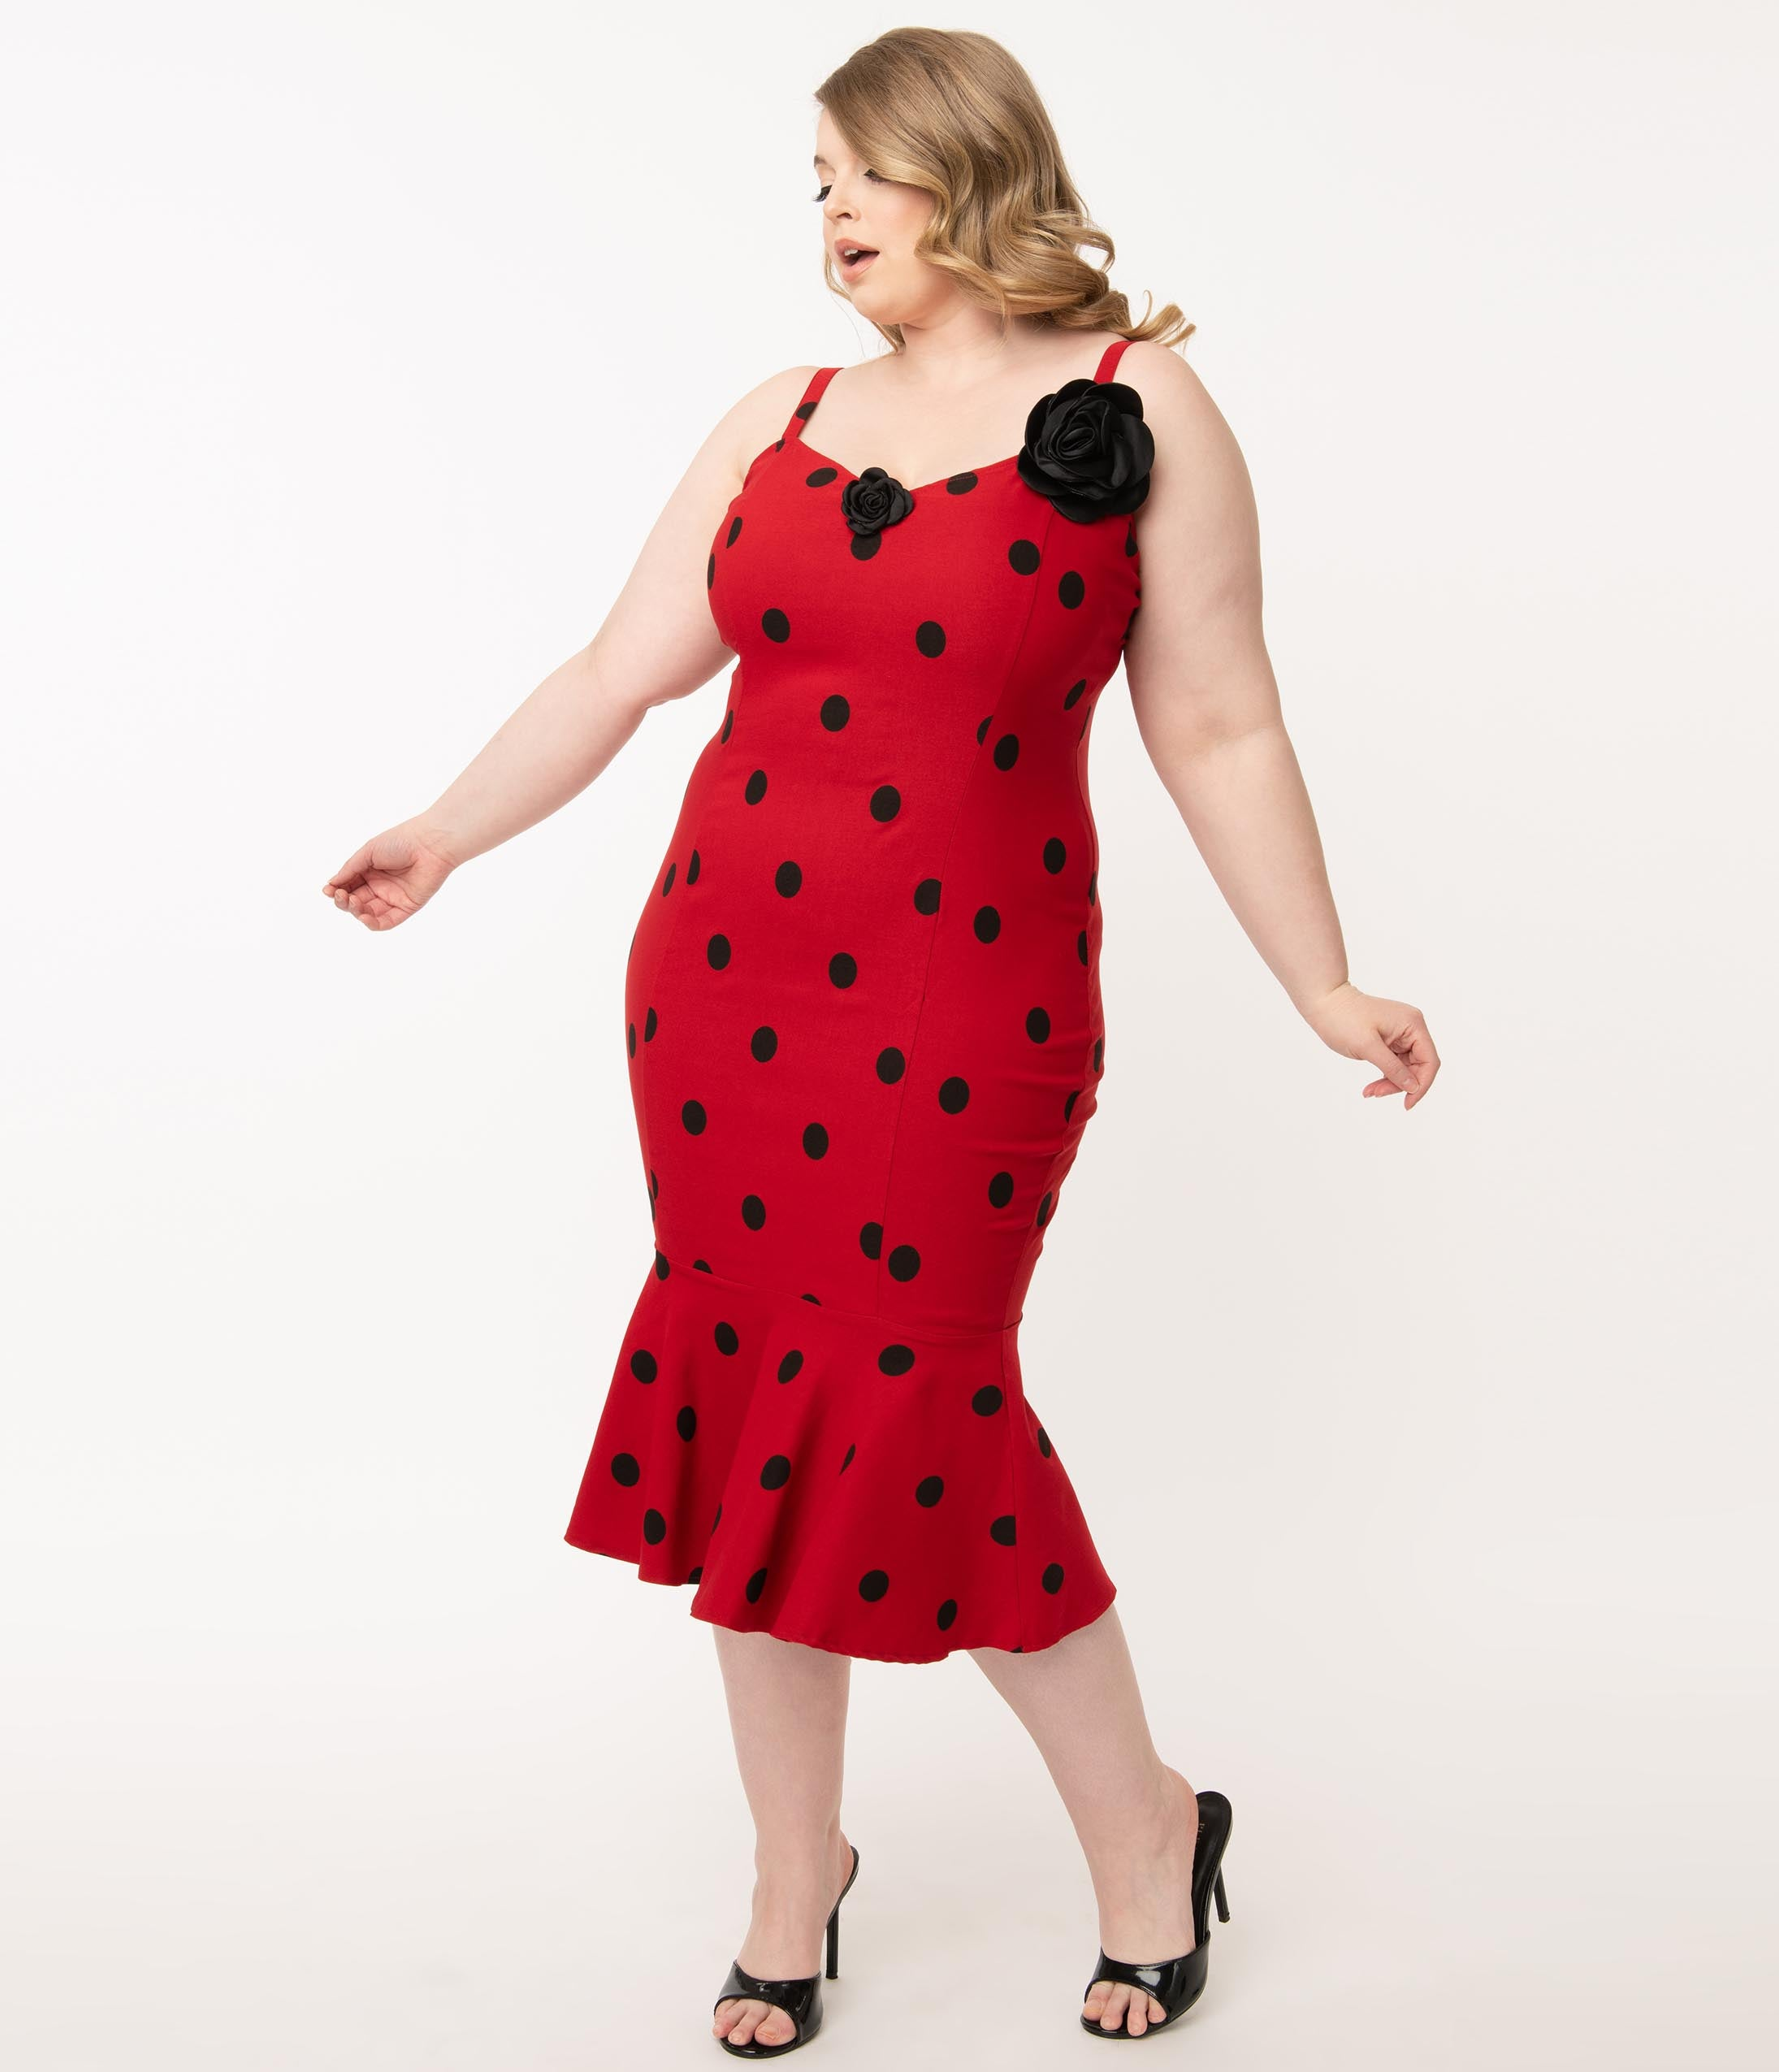 Plus Size Polka Dot Dresses – Vintage 40s, 50s, 60s, 70s Dresses Grease X Unique Vintage Plus Size Red  Black Polka Dot Rizzo Wiggle Dress $98.00 AT vintagedancer.com